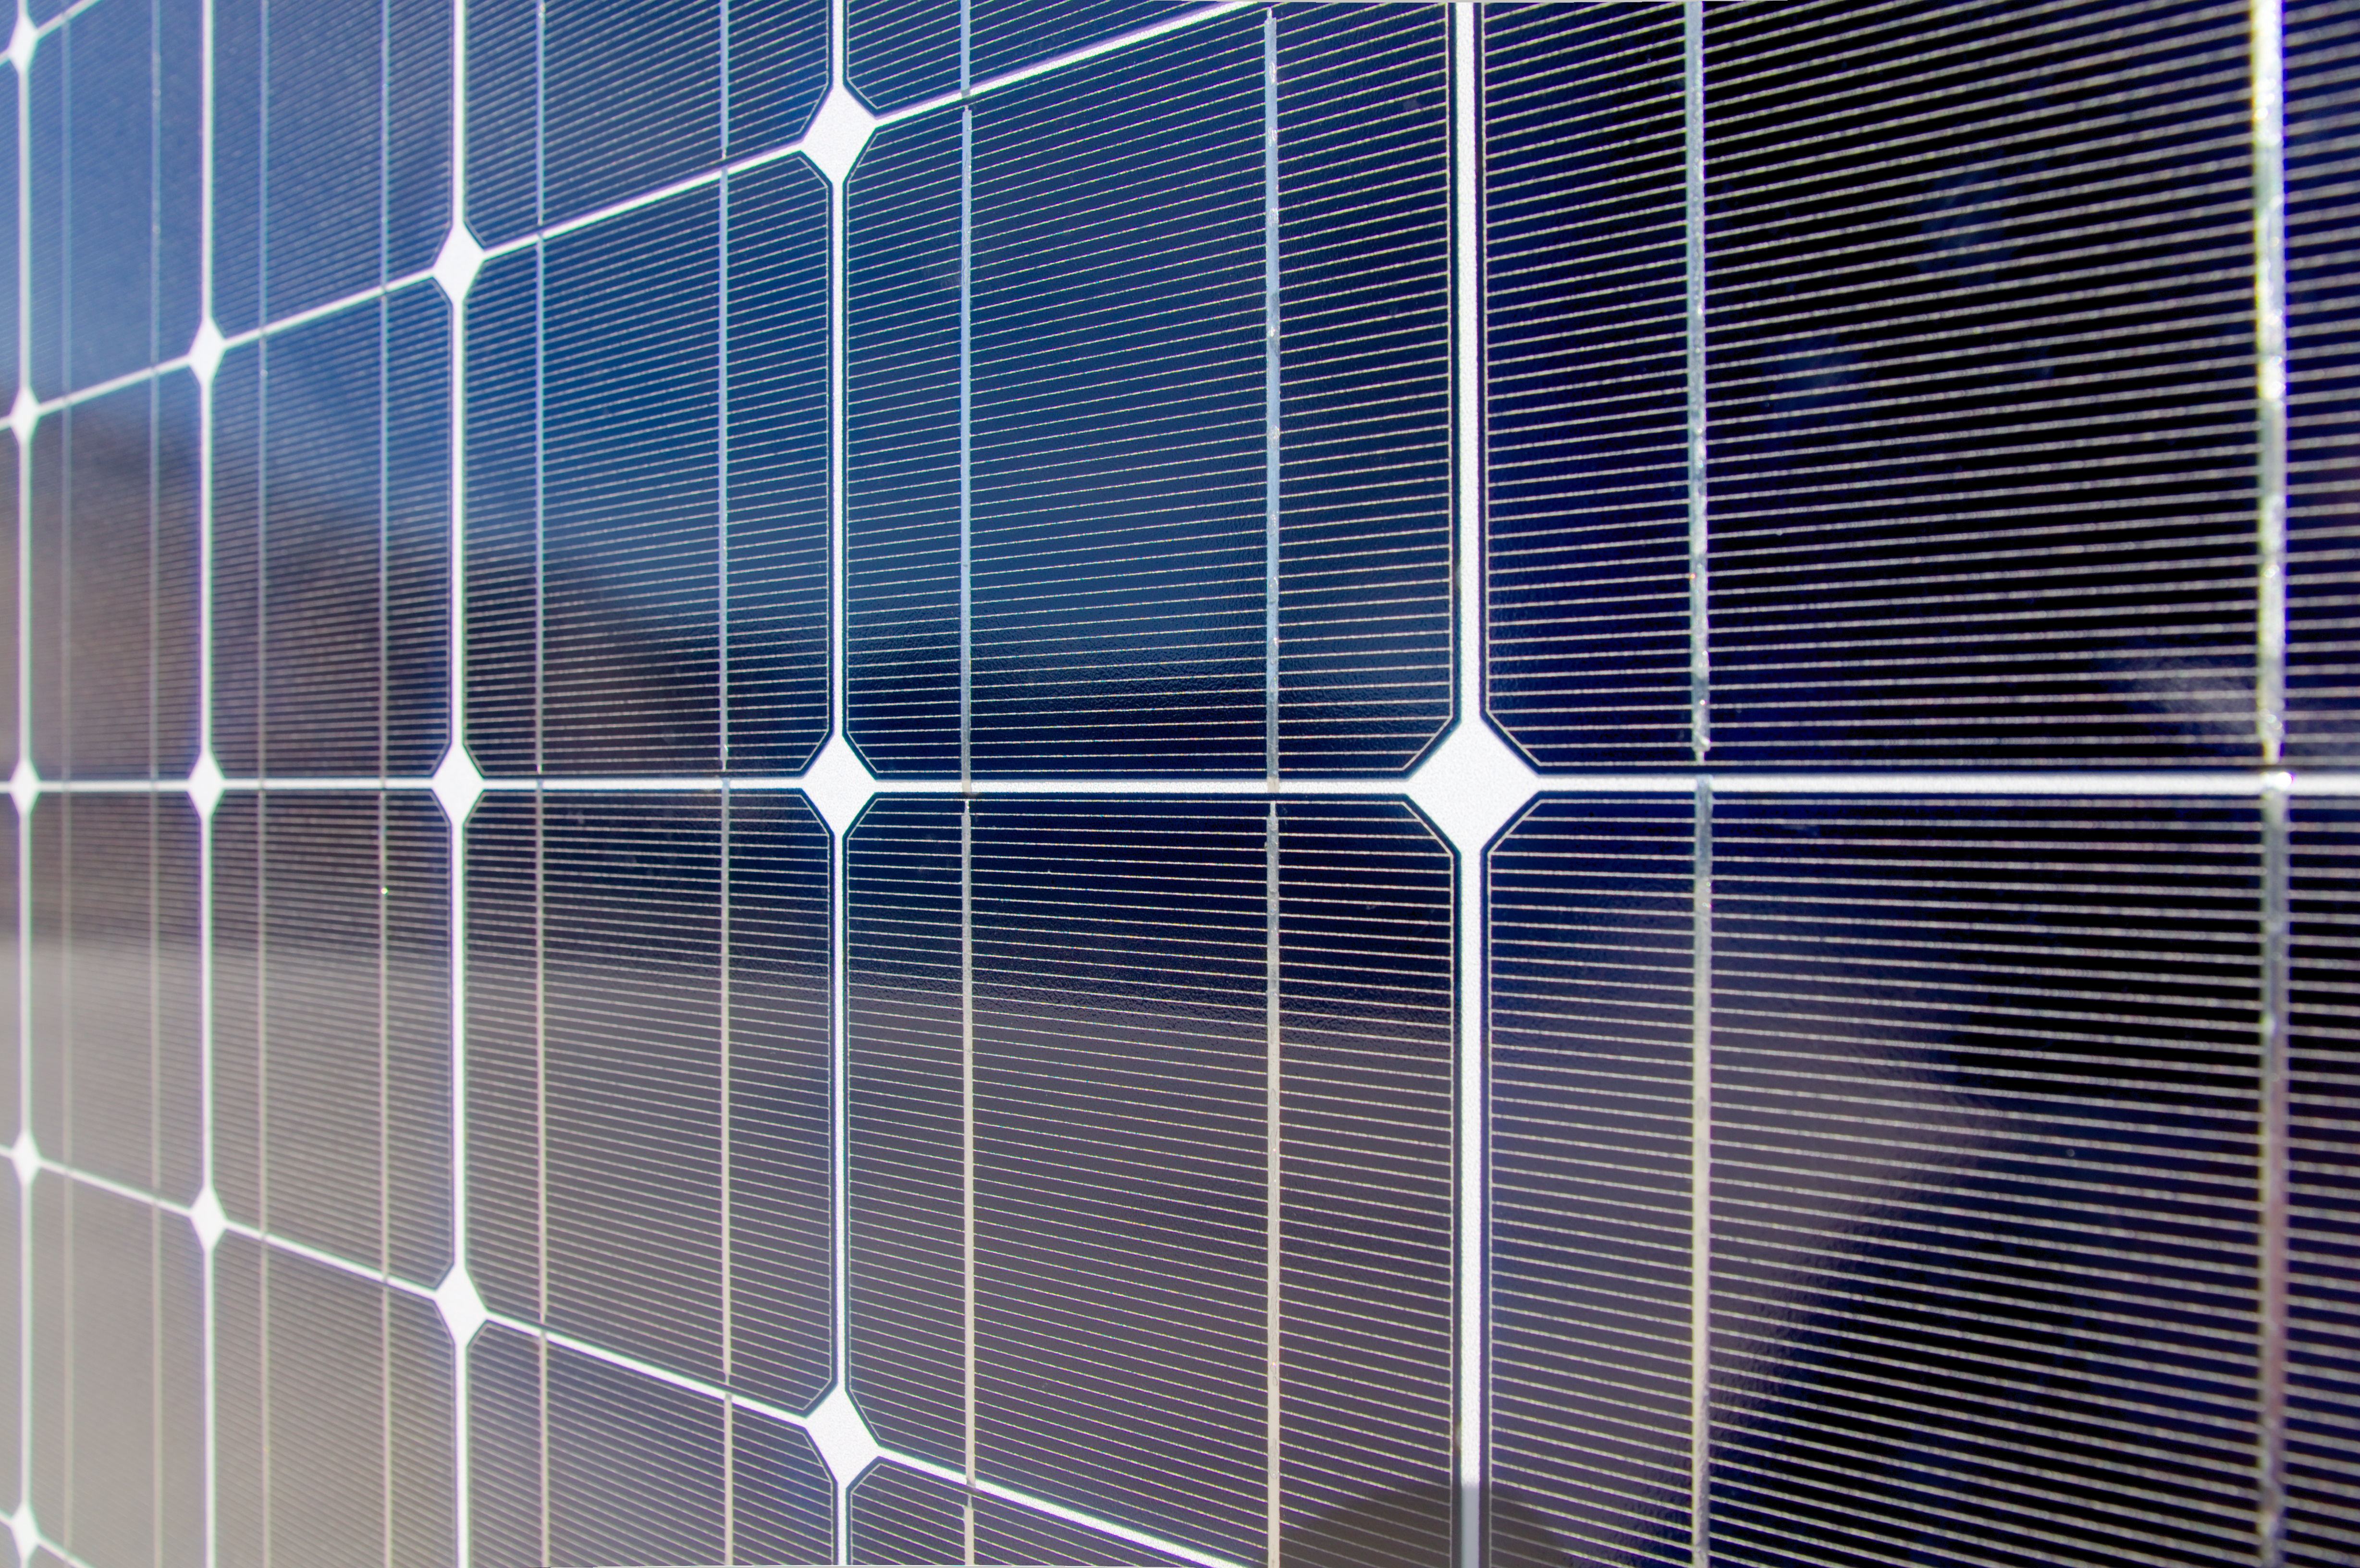 Solar power : Will organic photovoltaic become an industry disrupter?